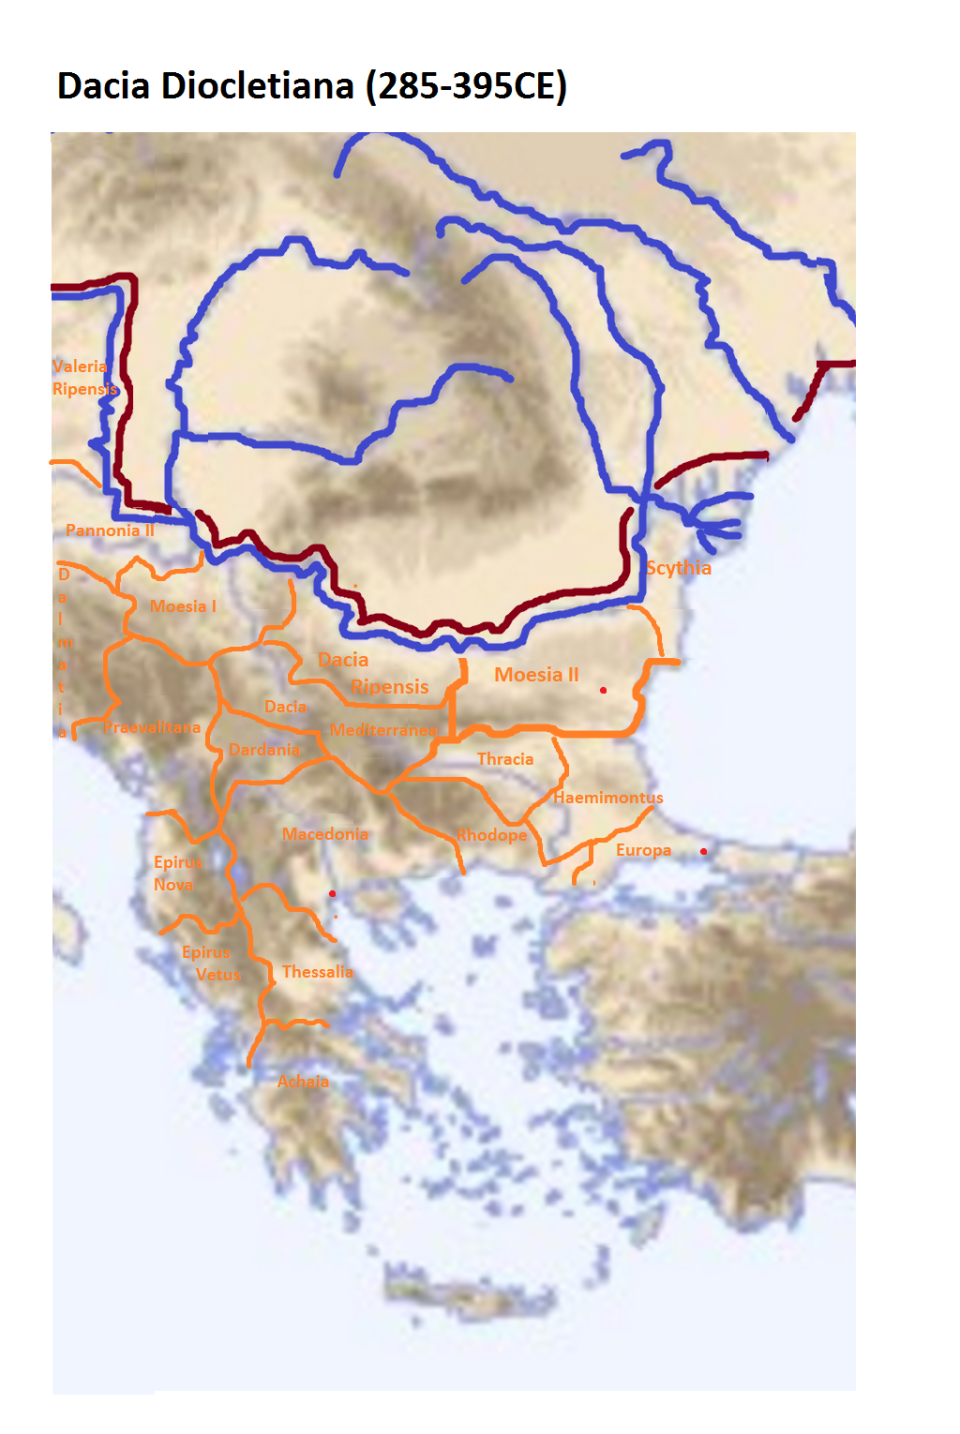 dacia-diocletiana-285ce-province-legends1.png